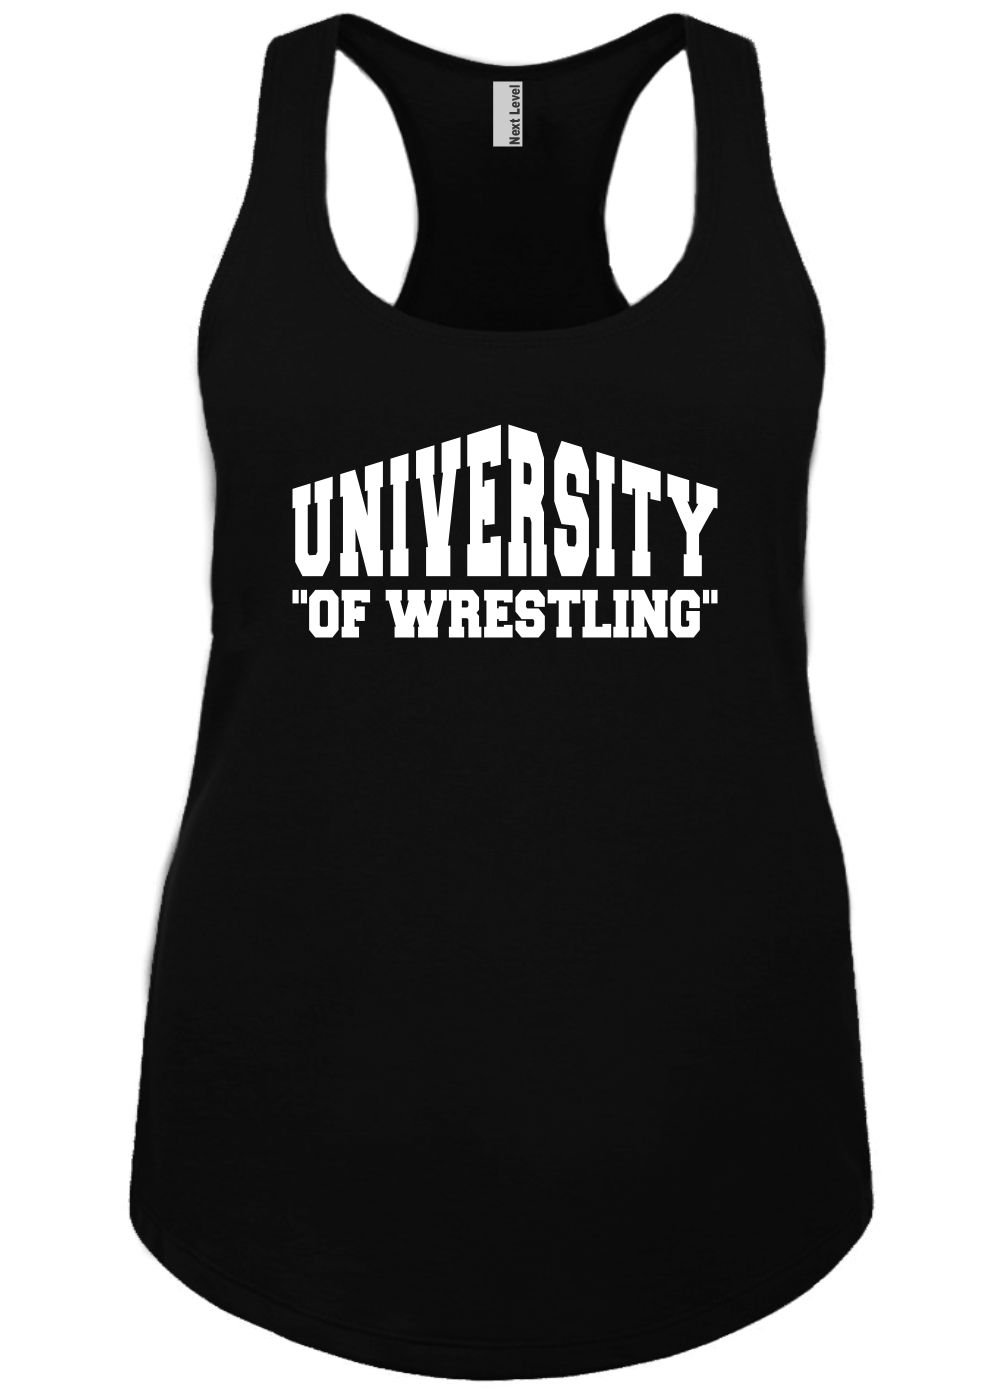 Mighty Ambitious Ladies Funny Tank Top University of Wrestling 2X